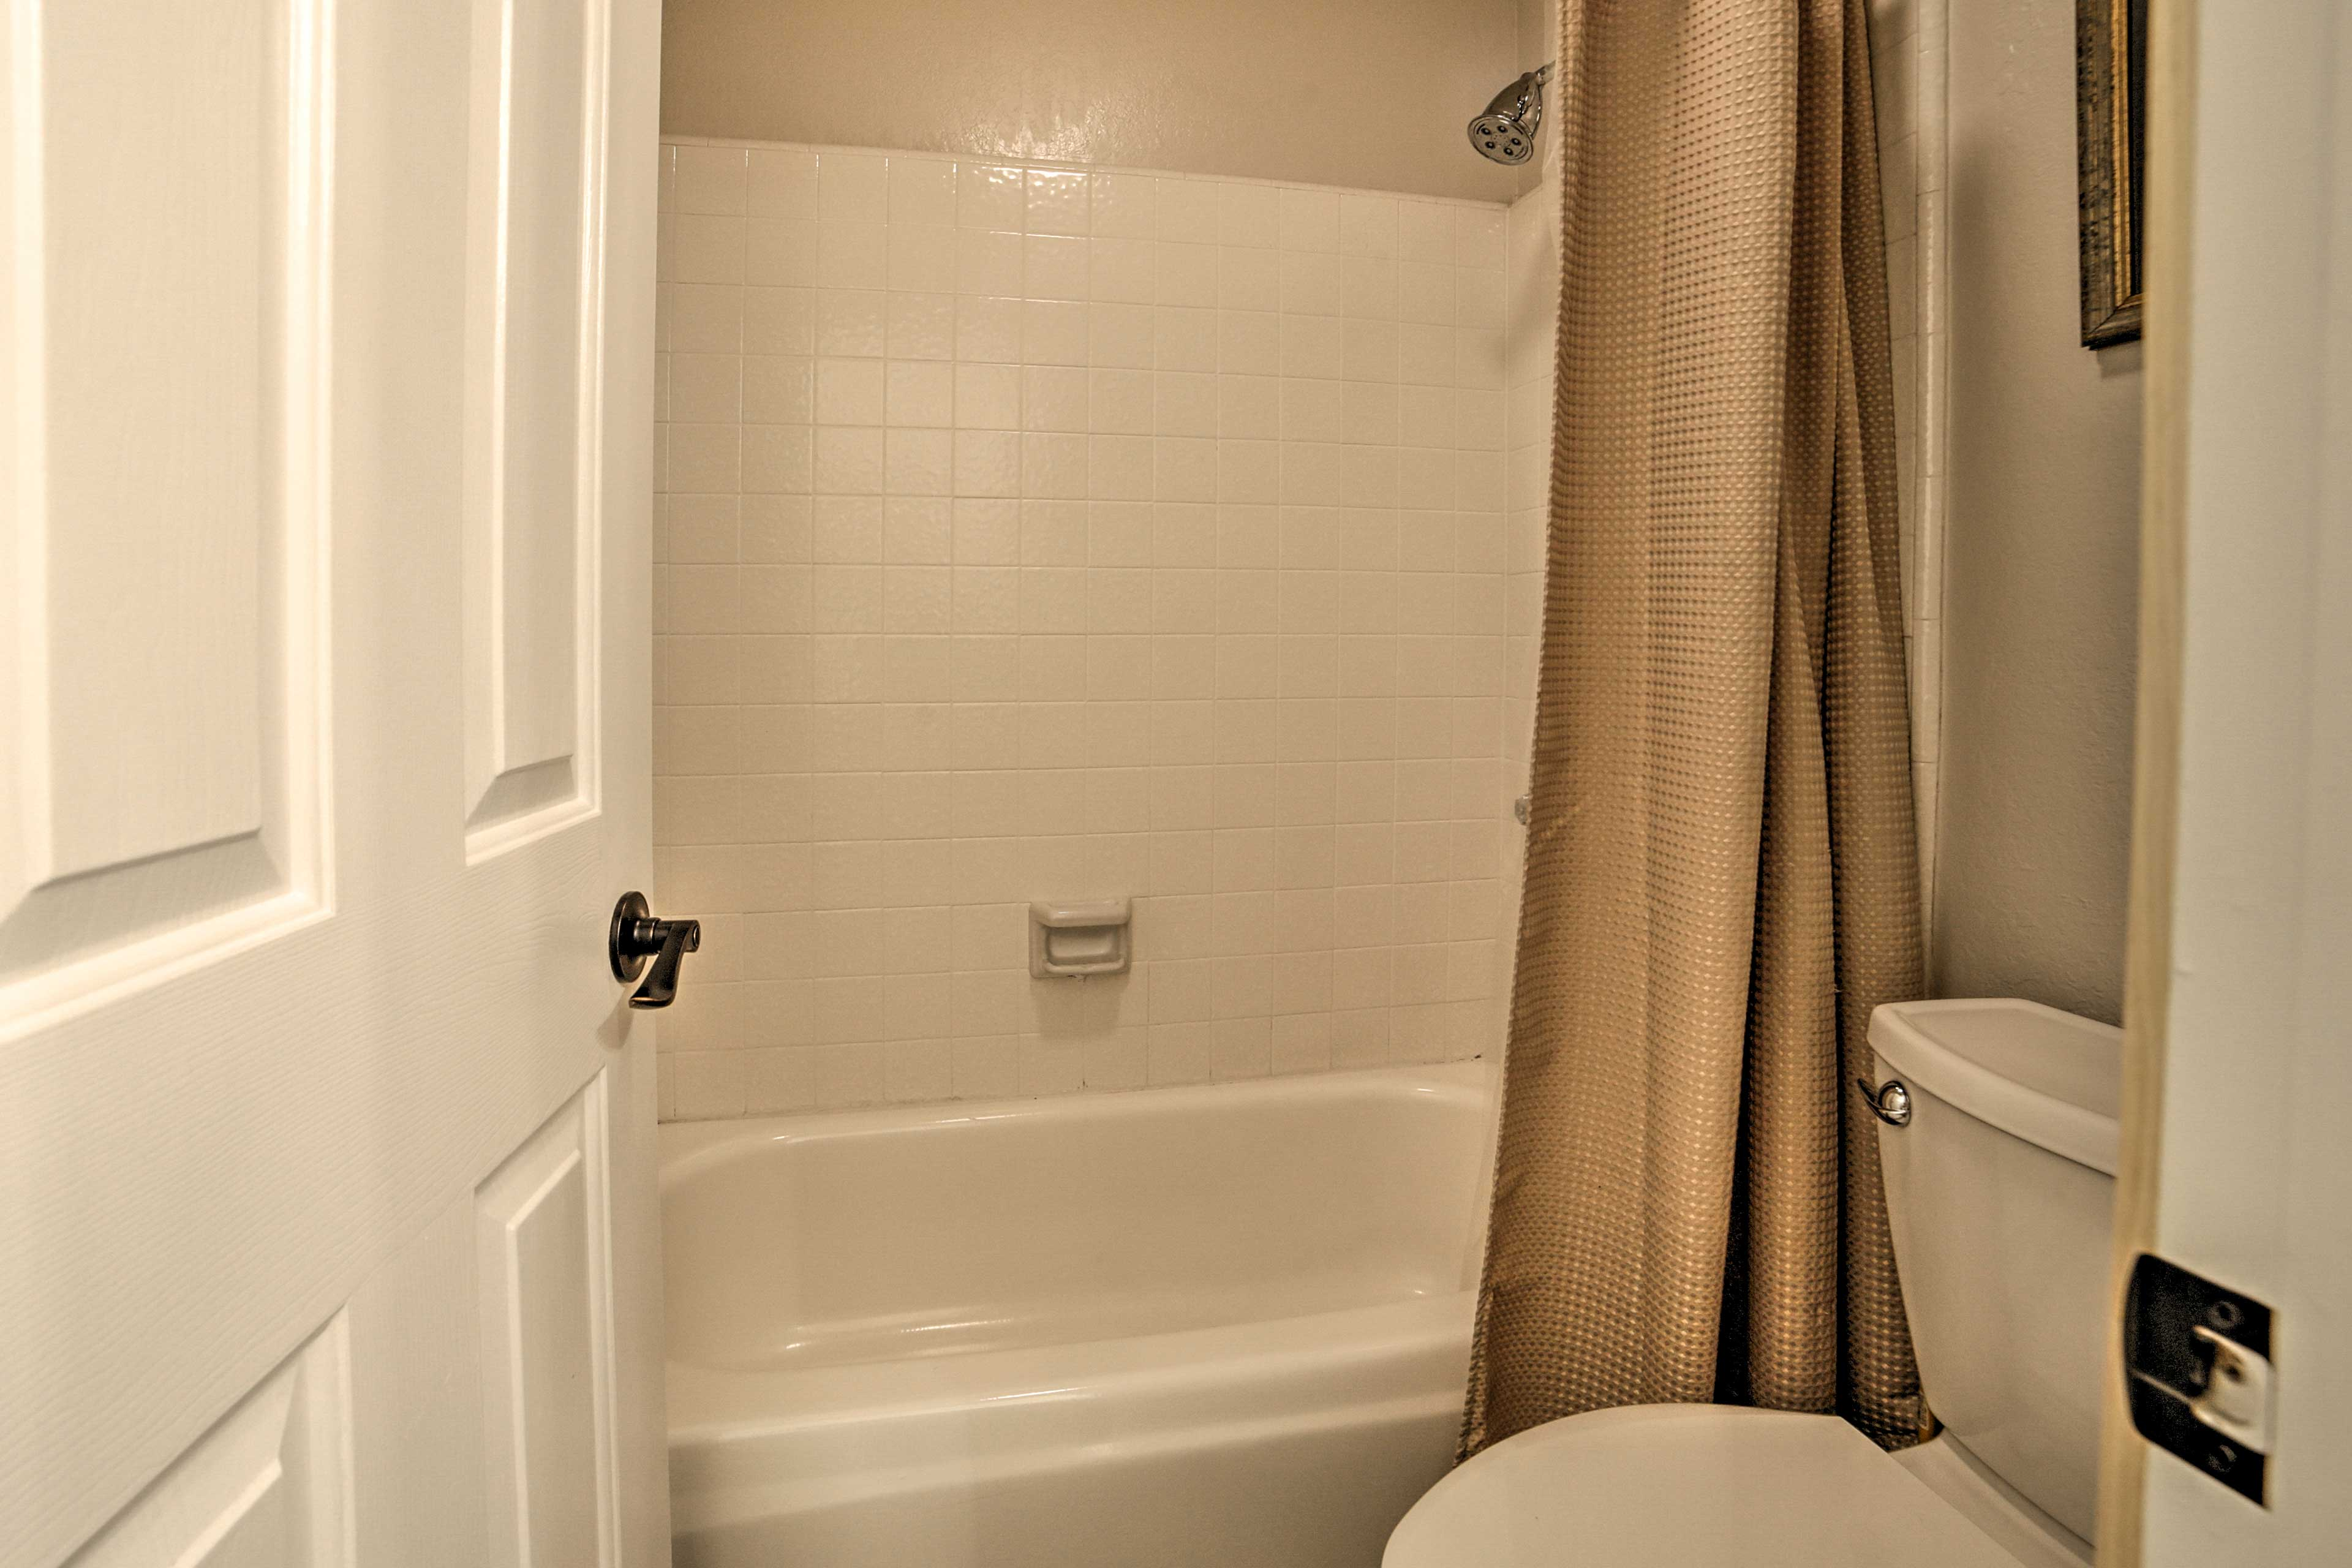 Soak in the tub or rinse off in the shower.